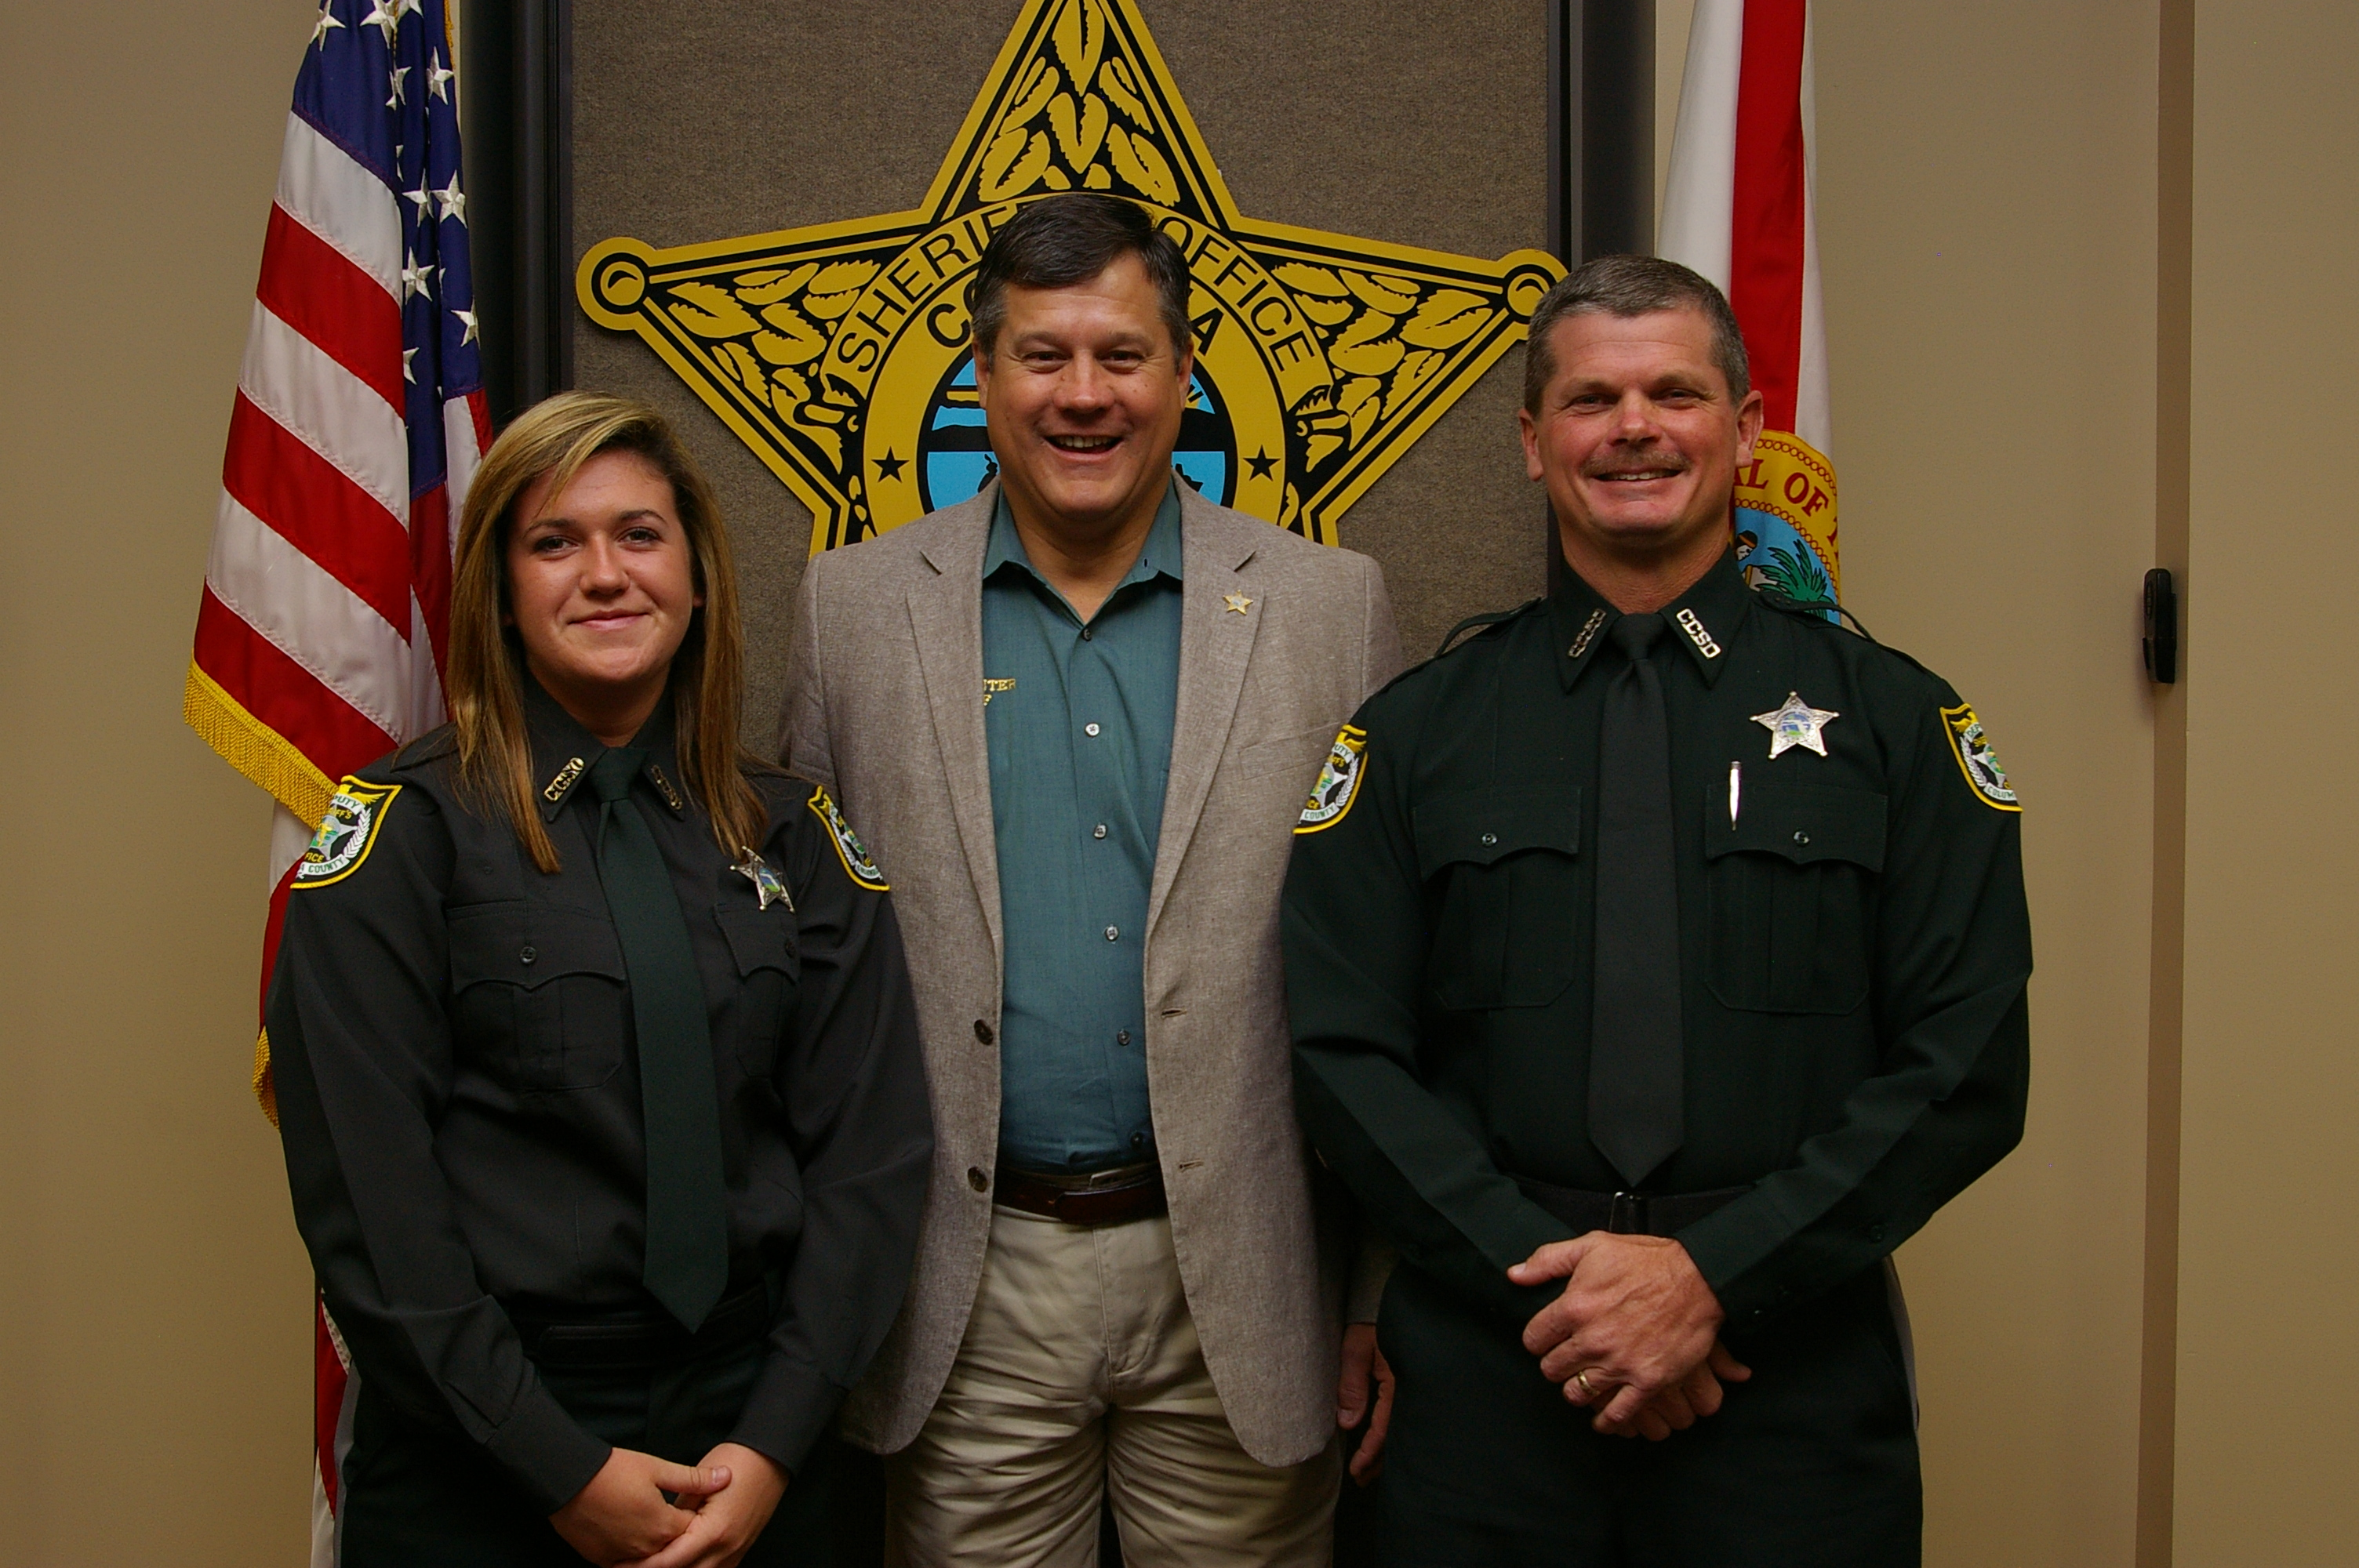 Detention Deputy Mackenzie Guerra, Sheriff Mark Hunter and Detention Deputy Anson Johnson